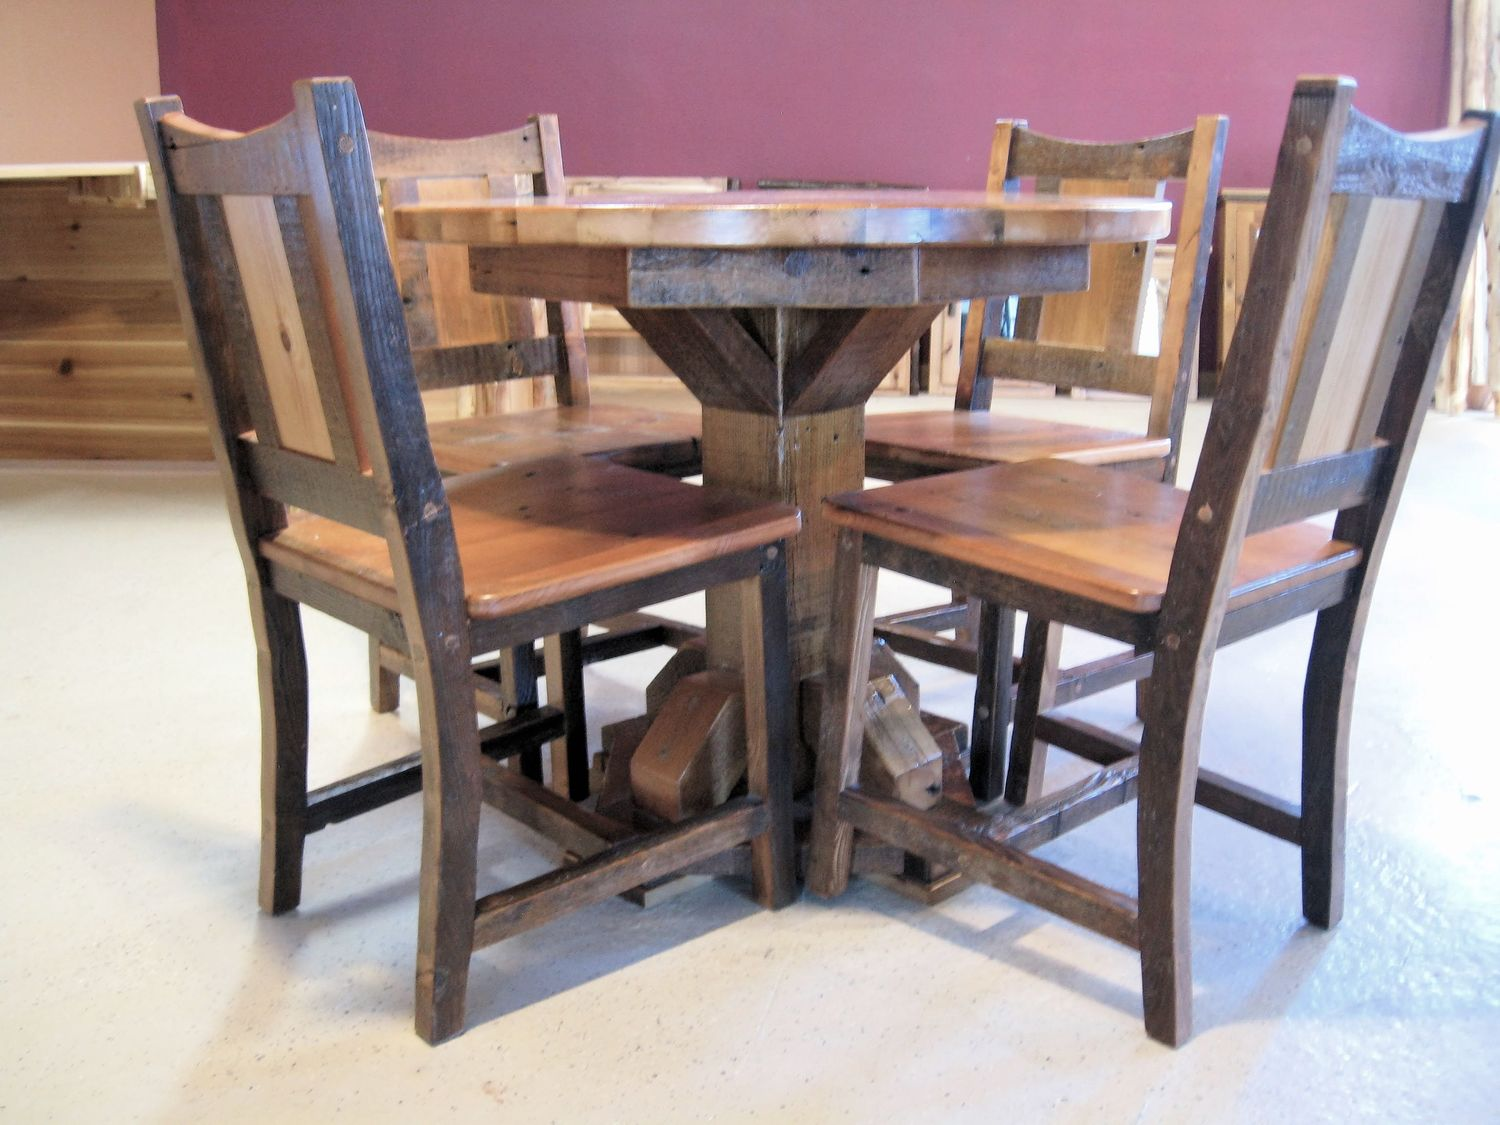 Round barn wood dining table barn wood furniture rustic barnwood barn wood table chairsg dzzzfo